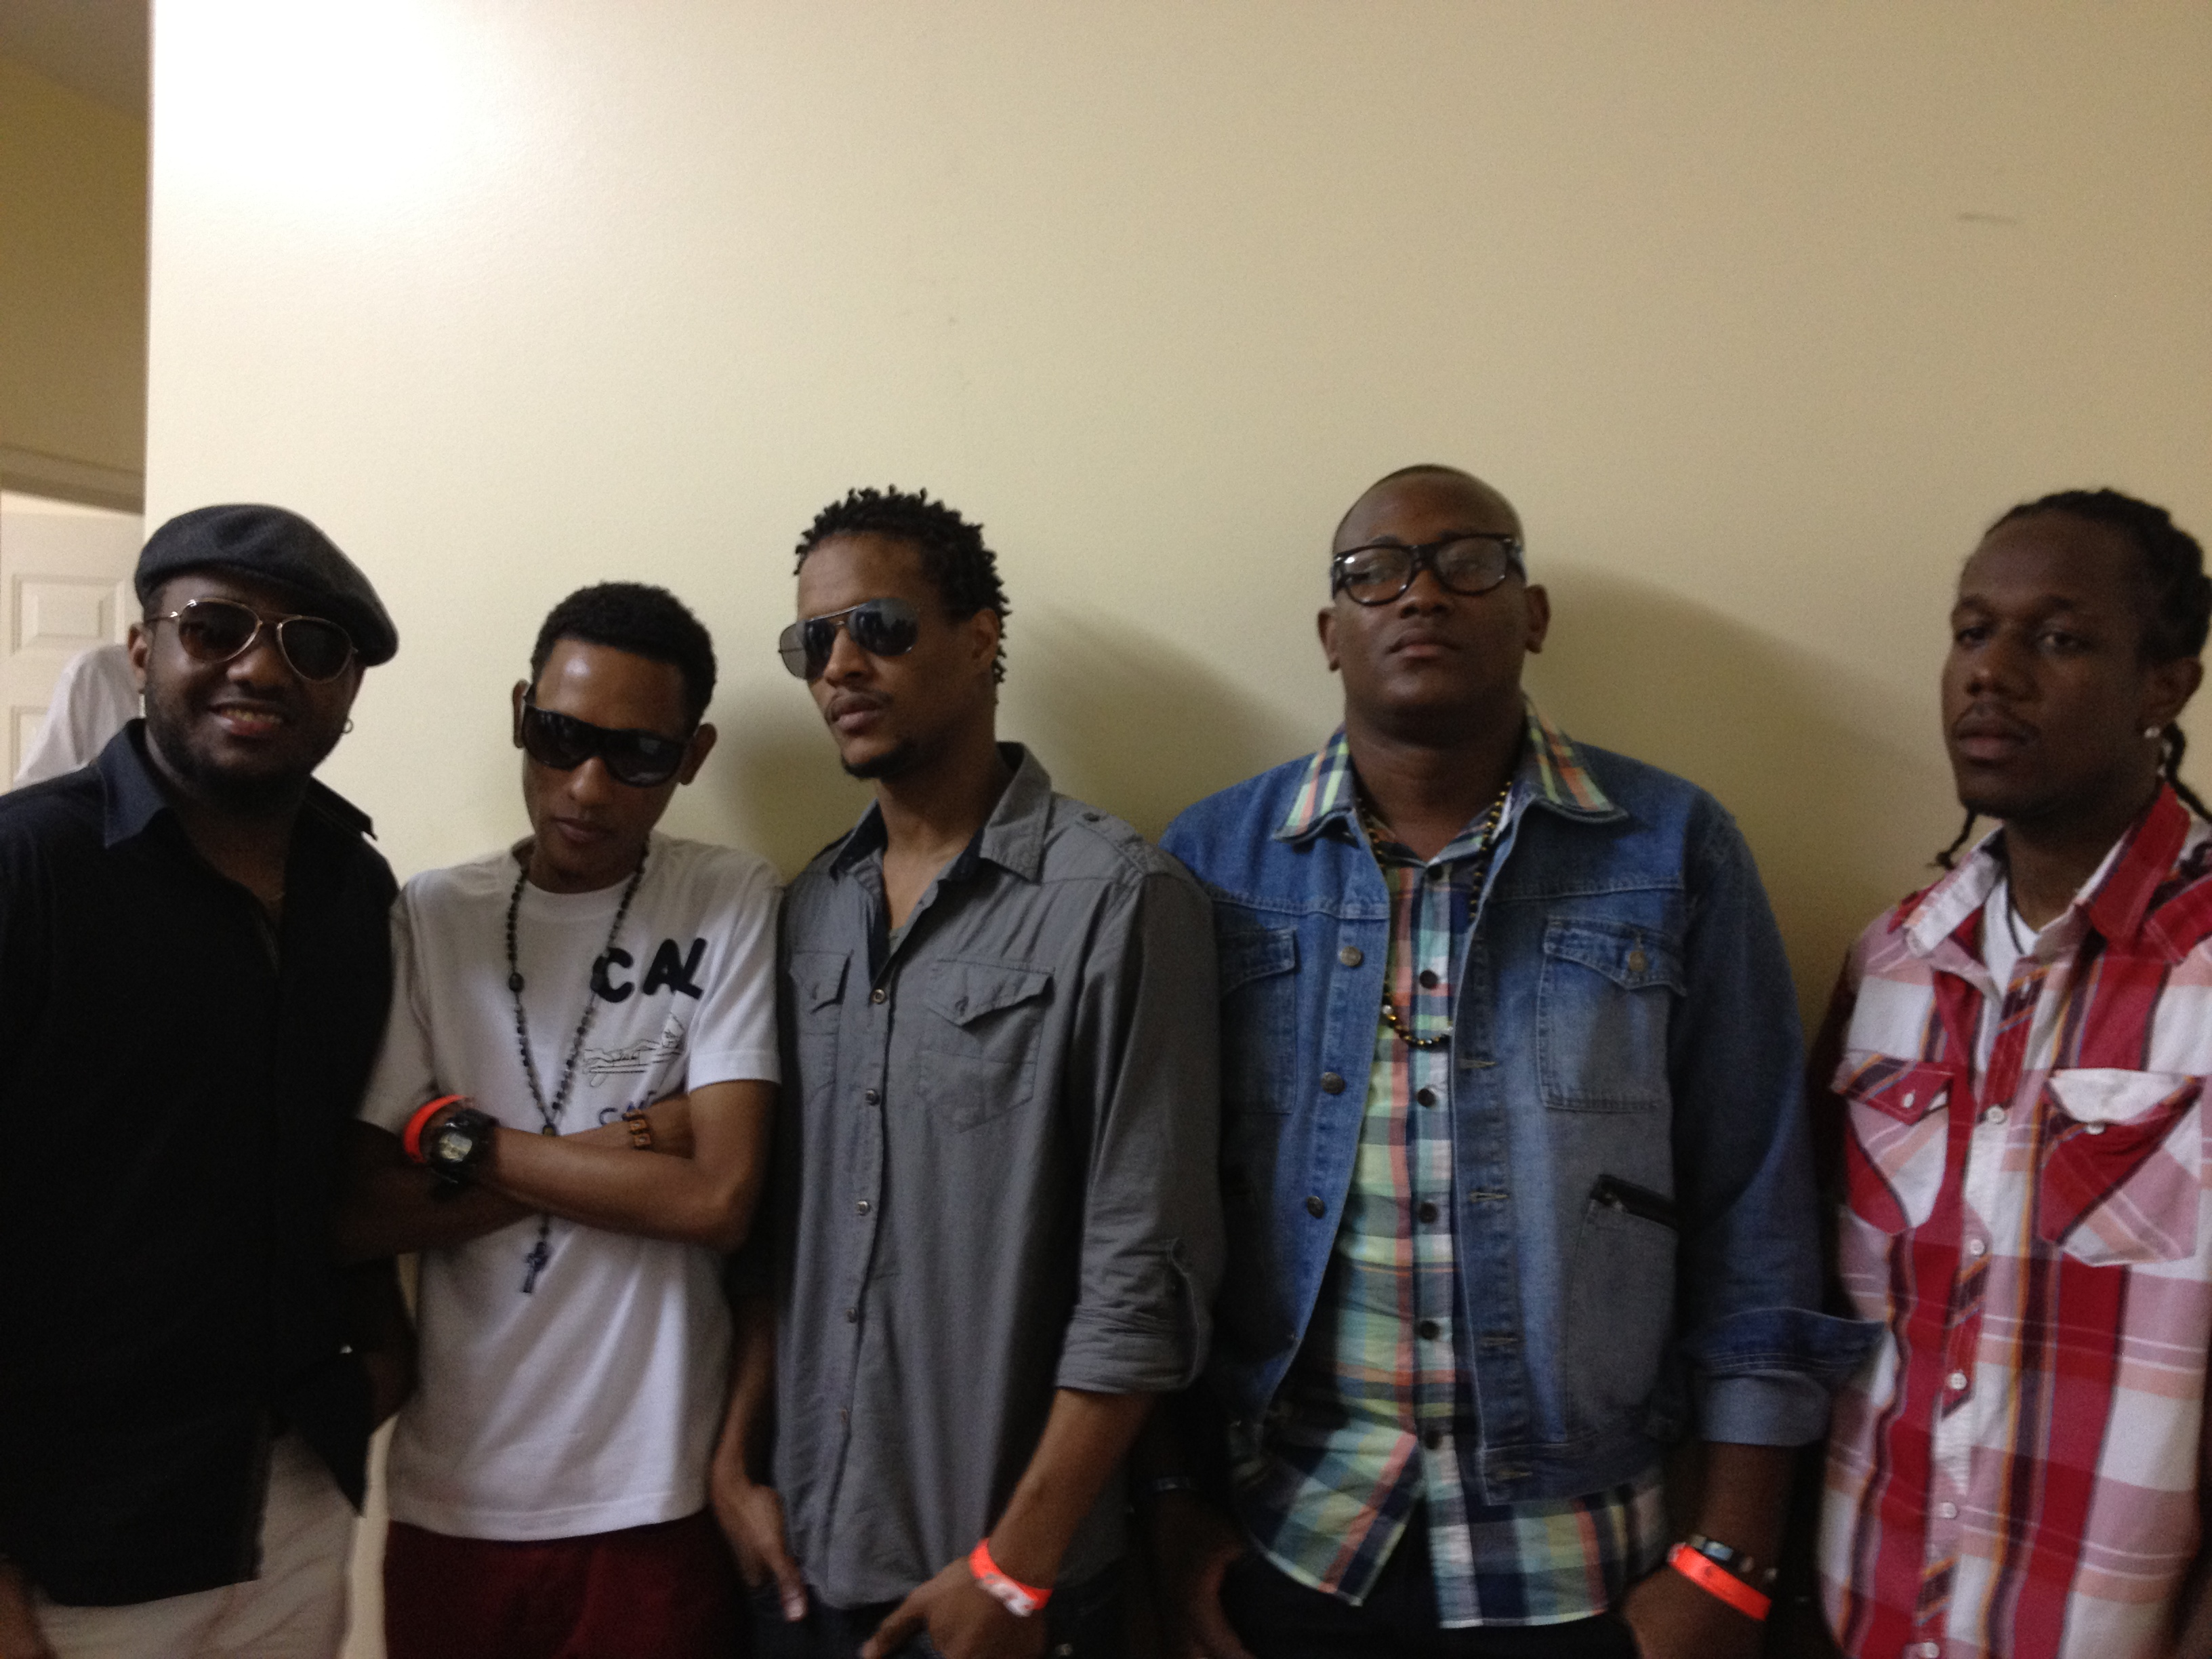 Shayne Ross, Young Mecca, Stephen Dantes, Twizzy Don, Shepp Dawg: 2012 Telethon Backstage